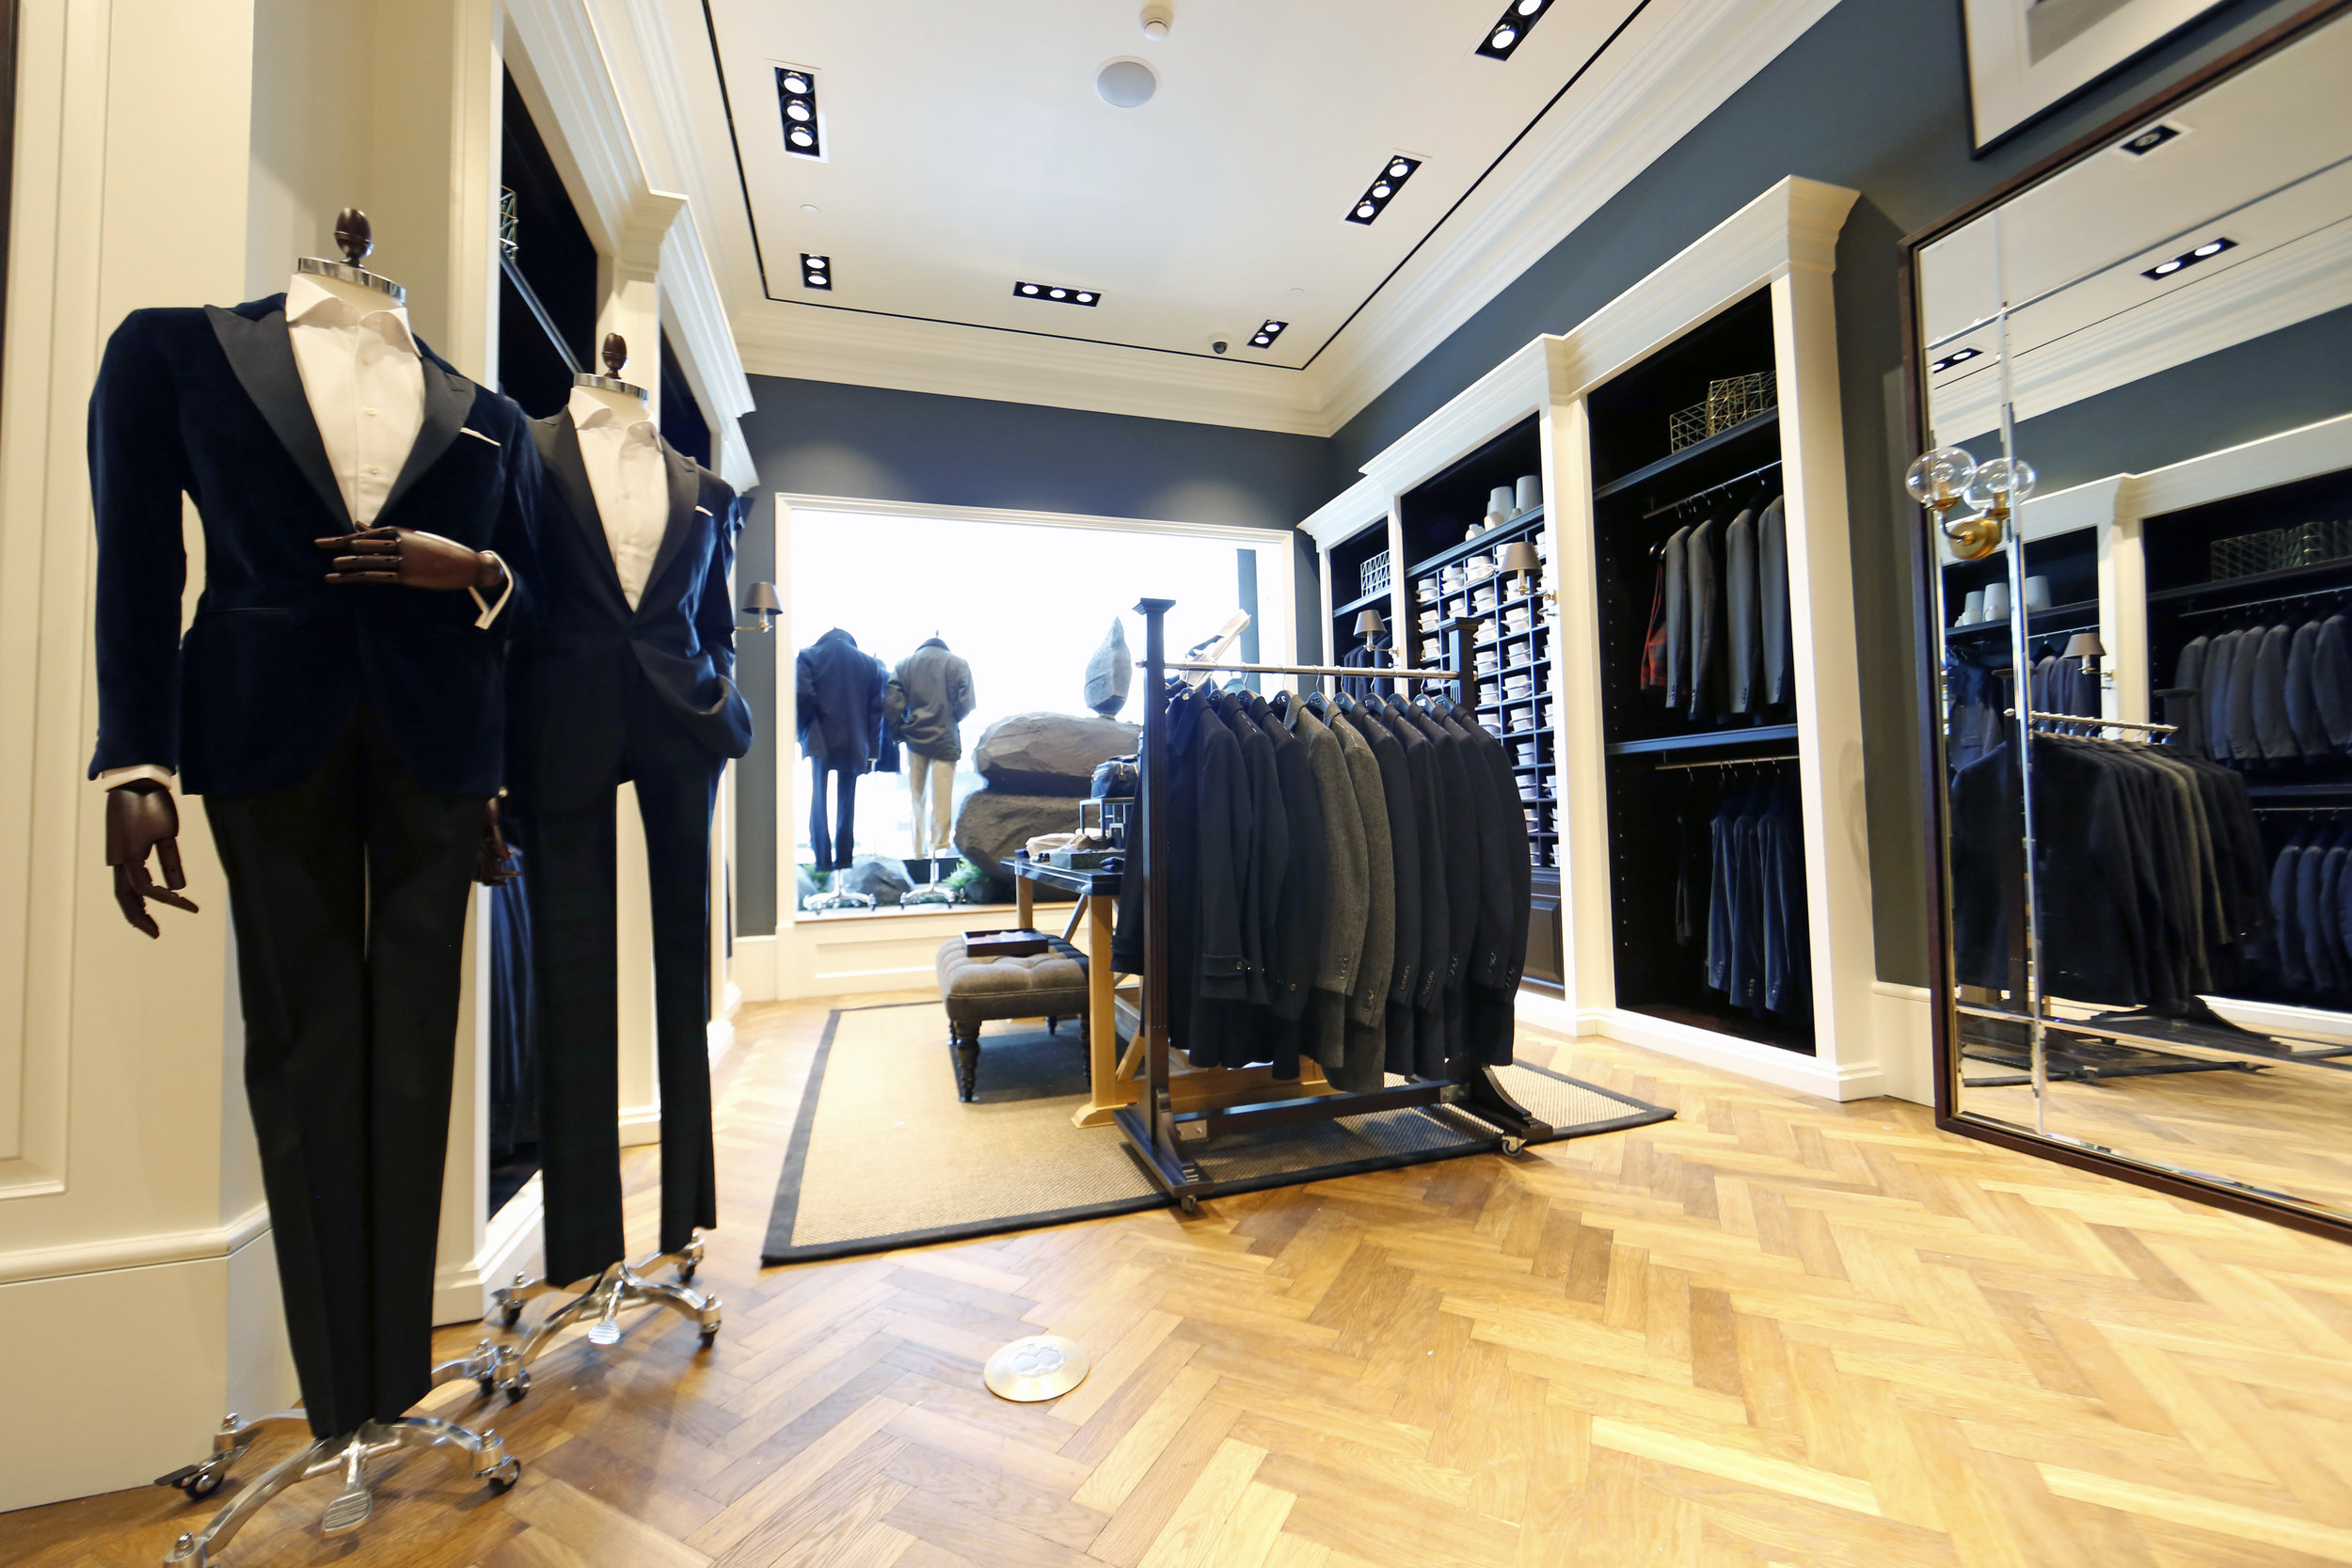 Smartly dressed mannequins in tuxedos on display on fishtail patterned wooden flooring at Hackett London's retail store. MEP by 2L Engineering.